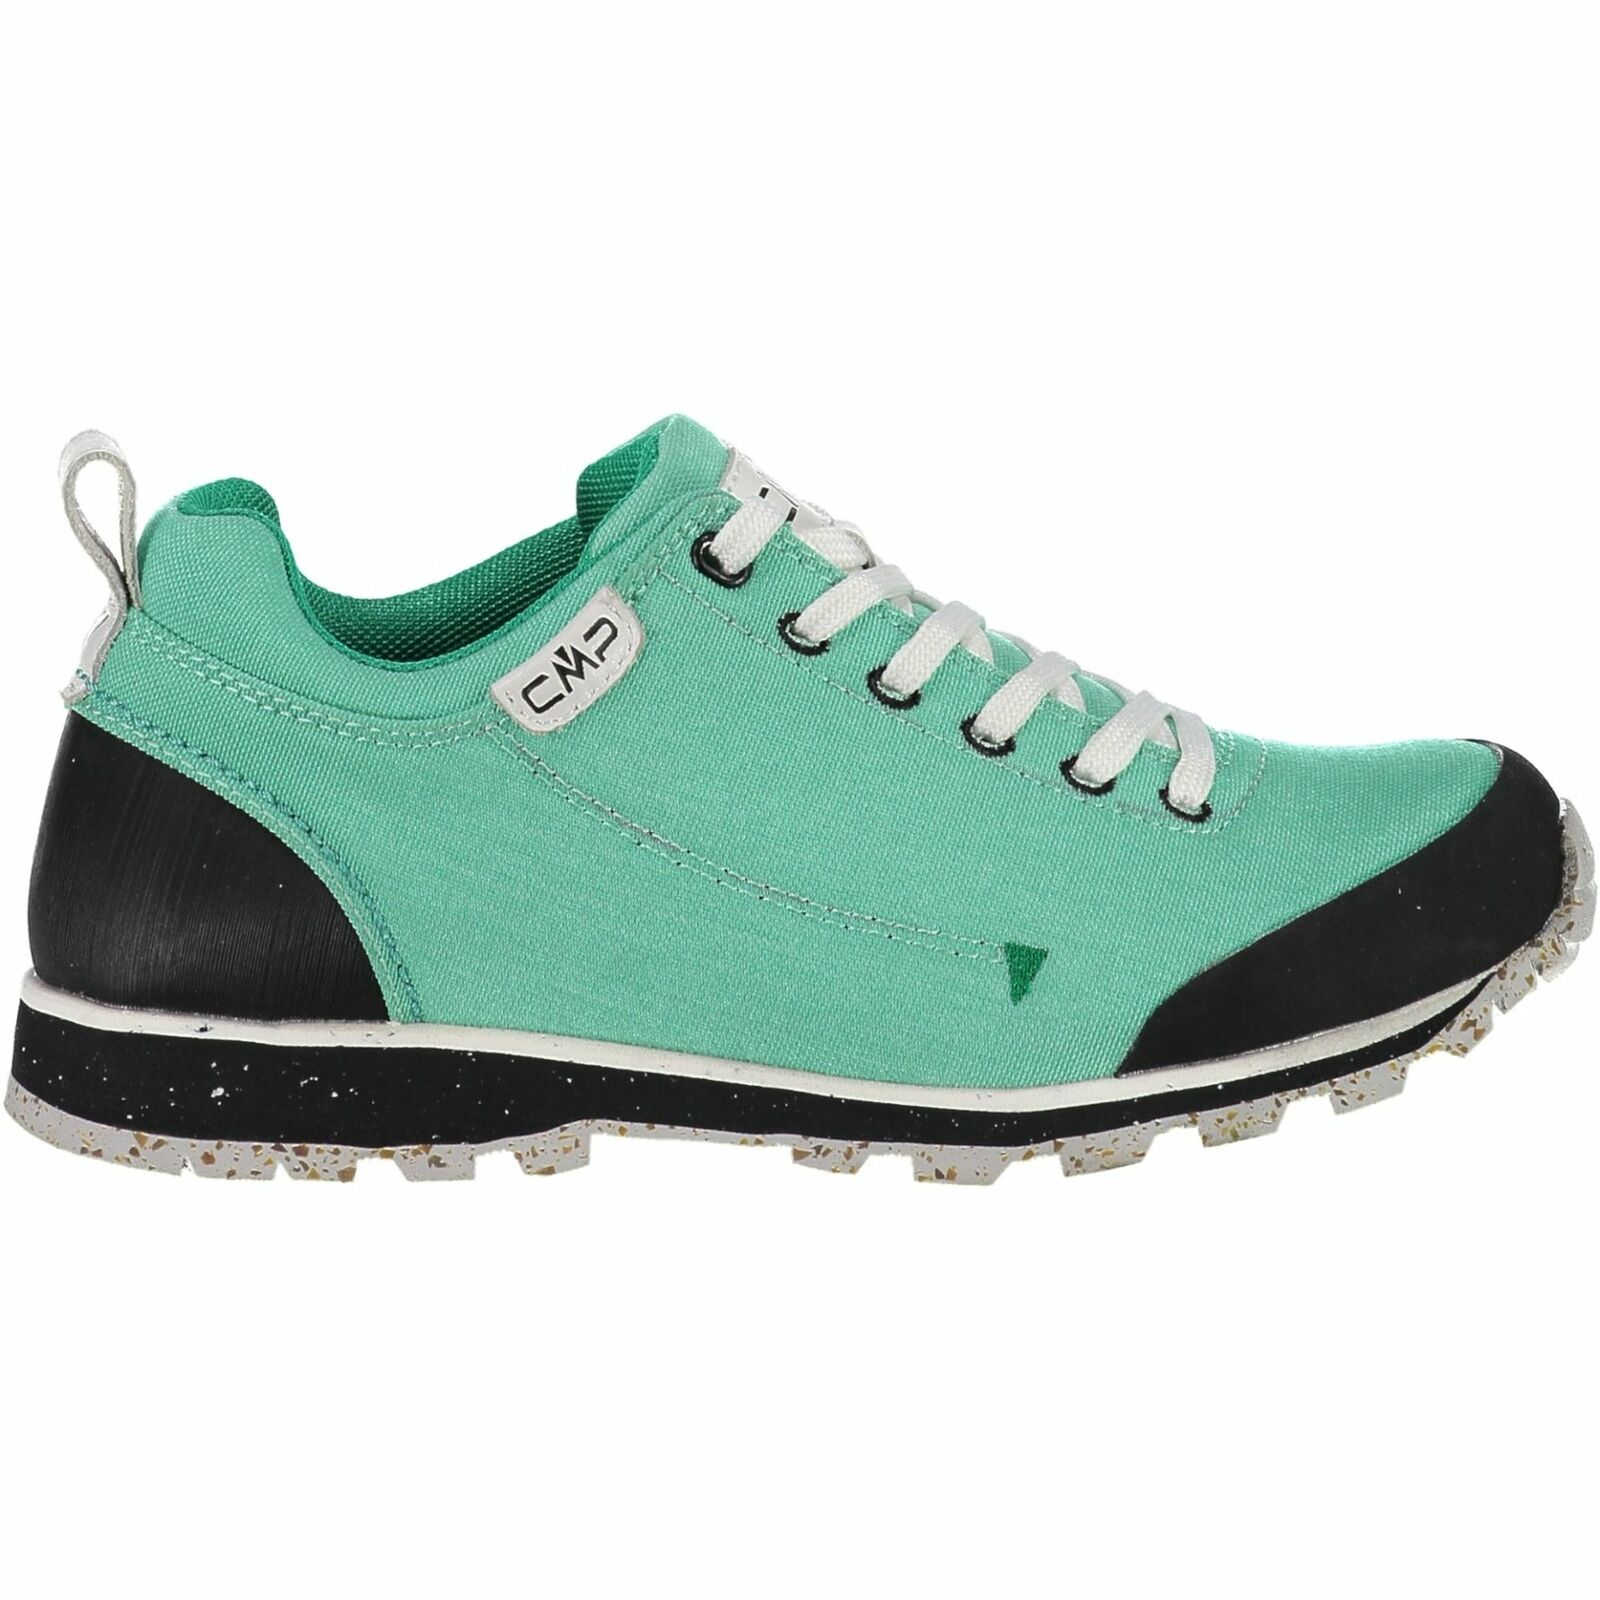 CMP hiking shoes outdoor elettra low wmn cordura hiking  shoes turquoise  no hesitation!buy now!